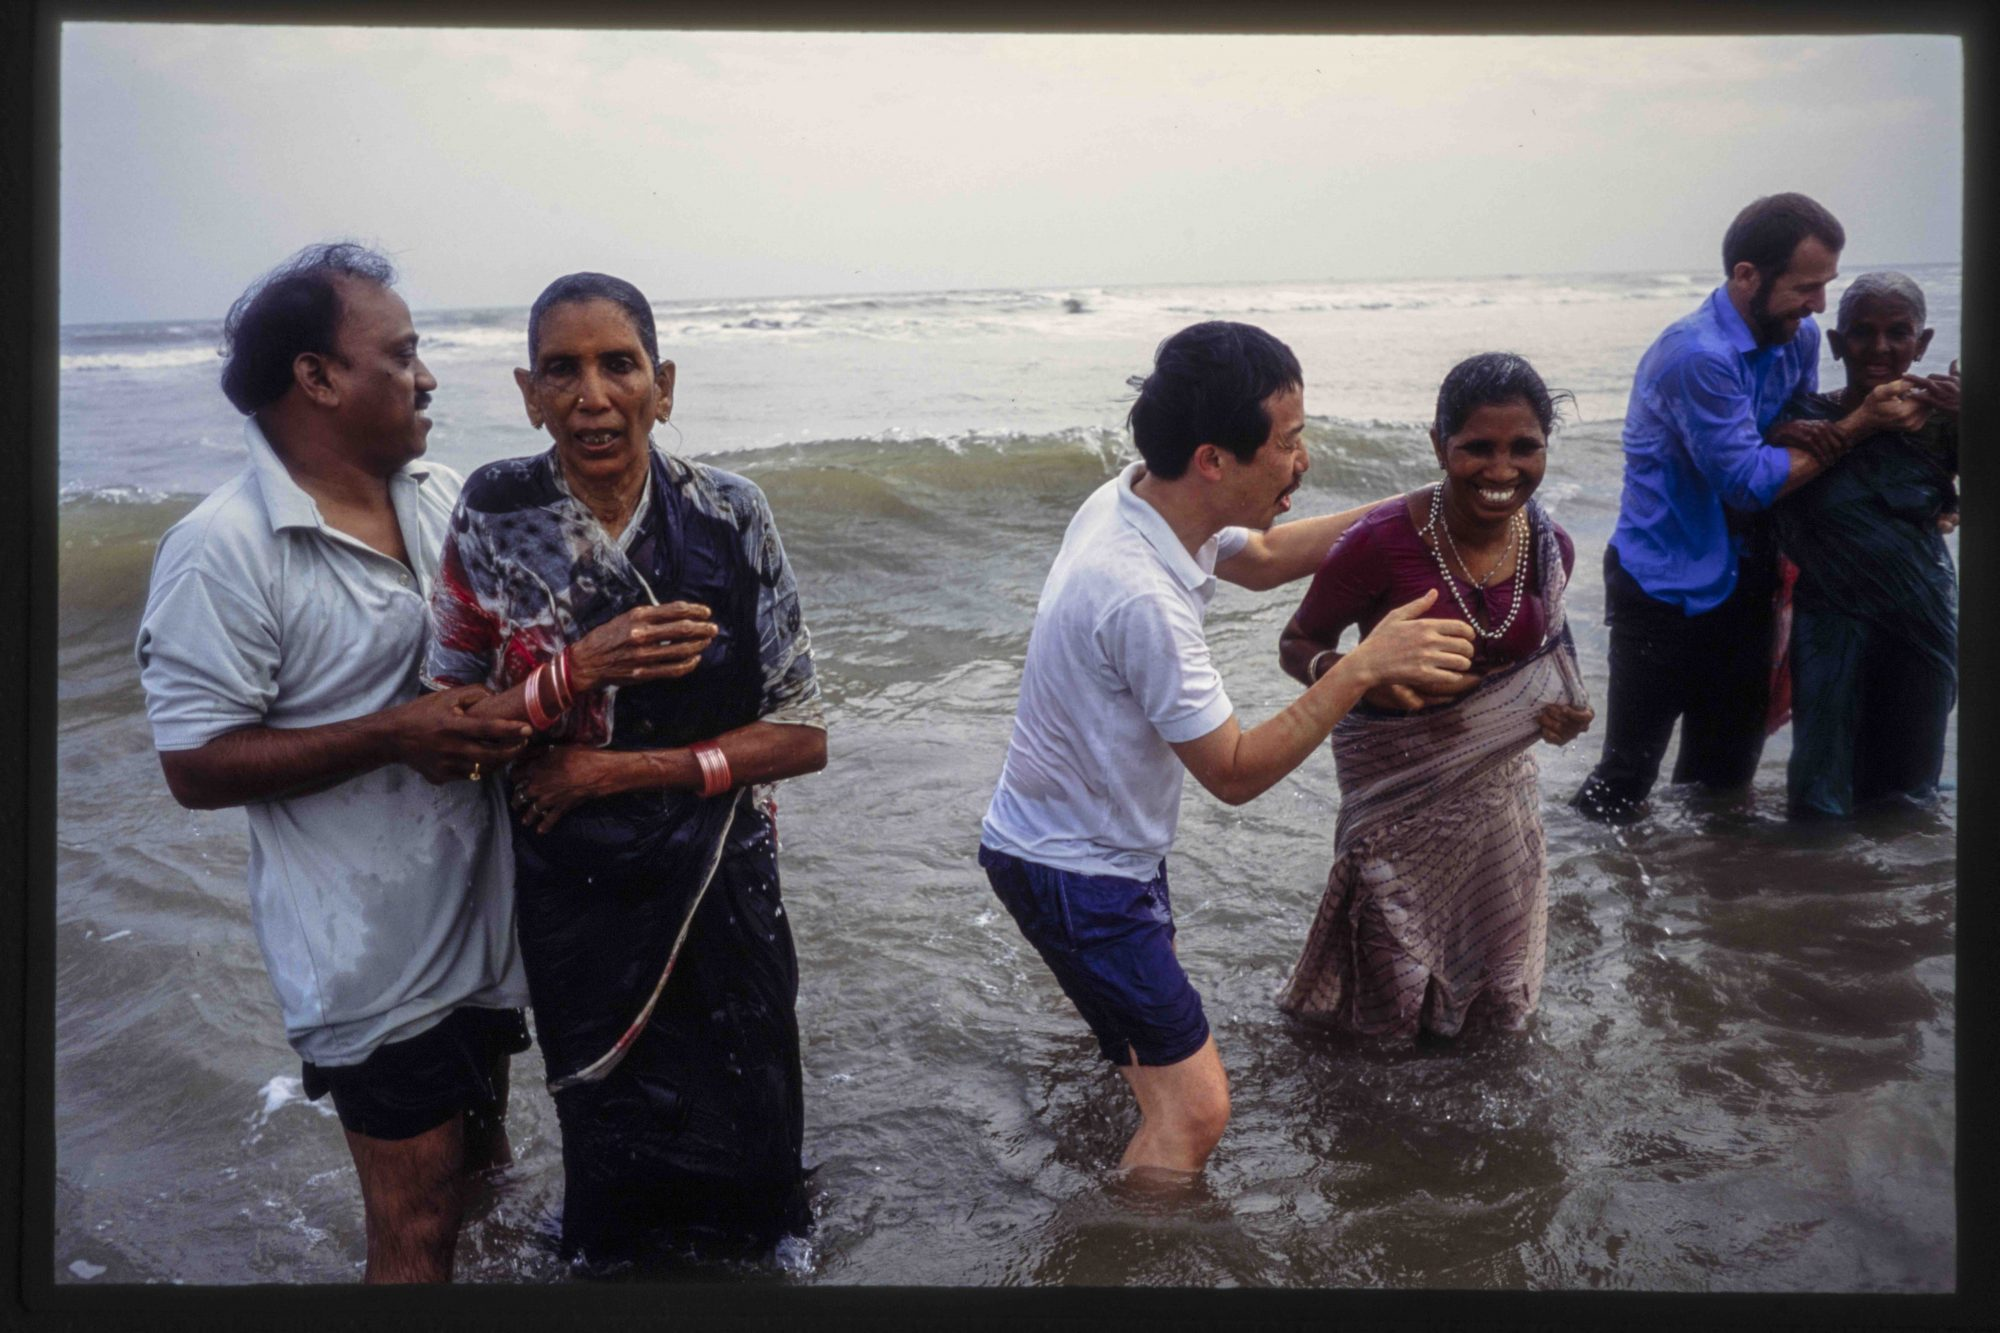 Baptisms in South Asia